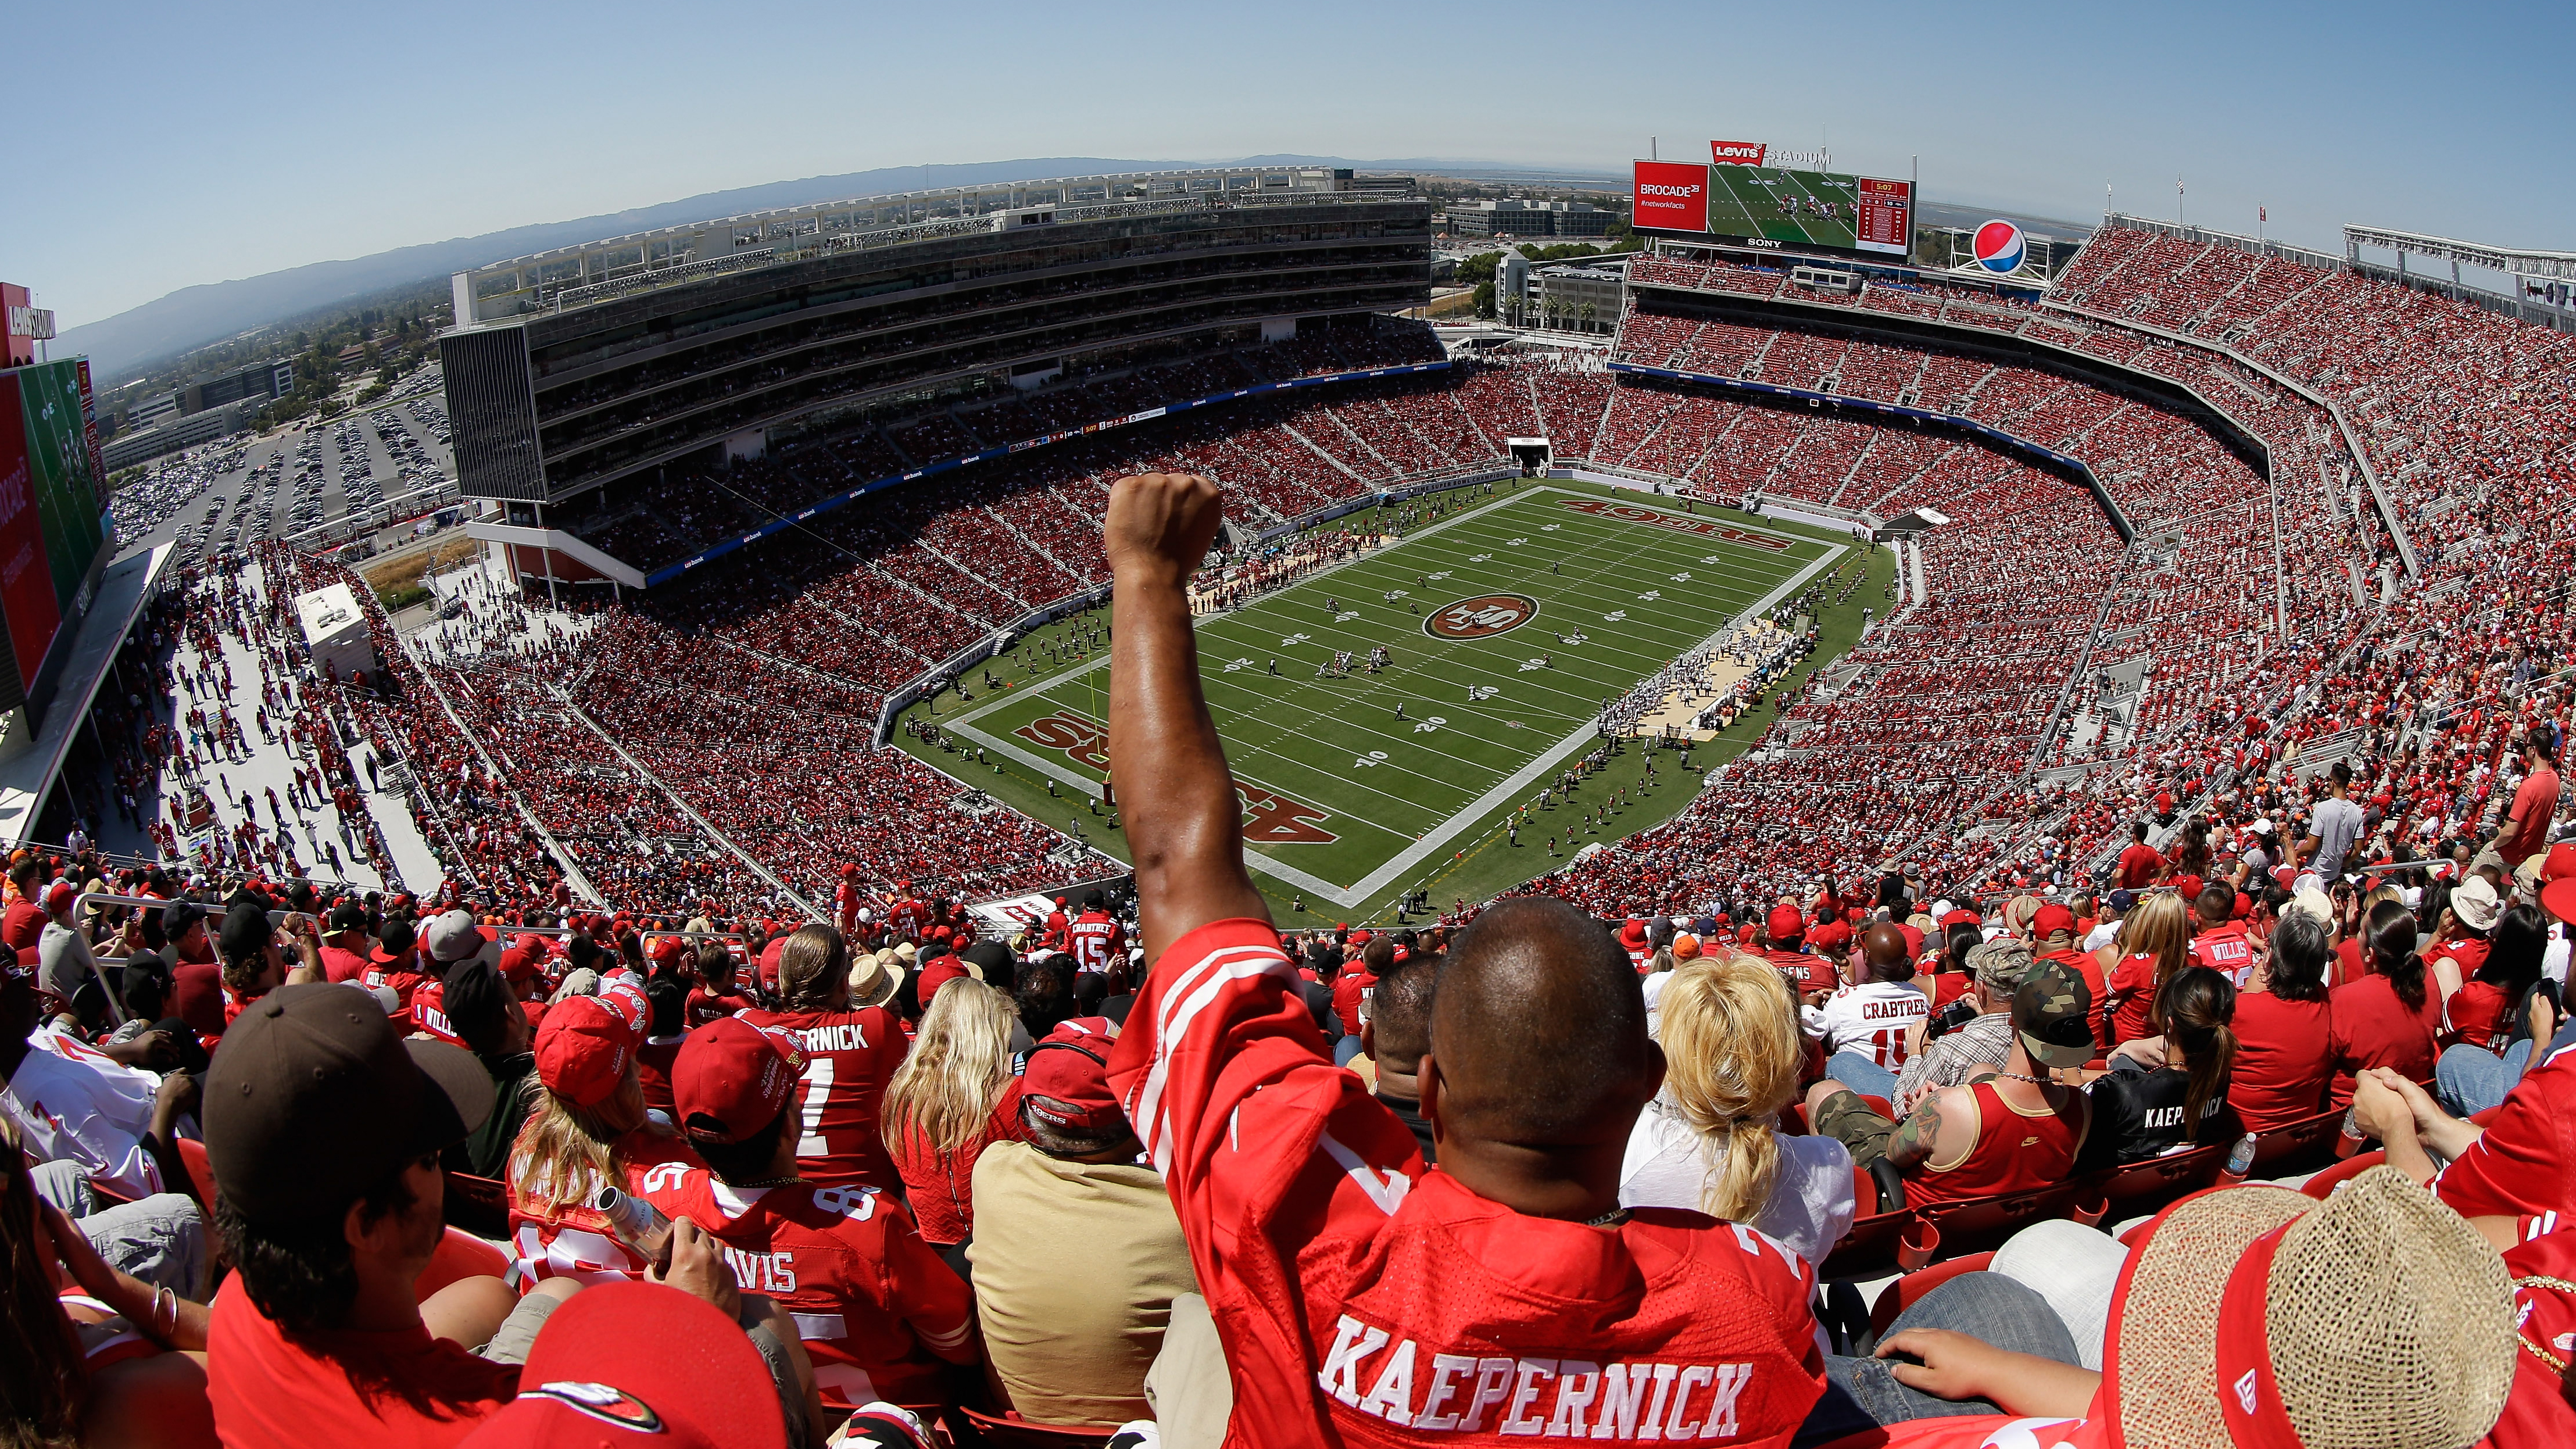 Traffic Nightmare Likely During 49ers Game at Levi's Stadium